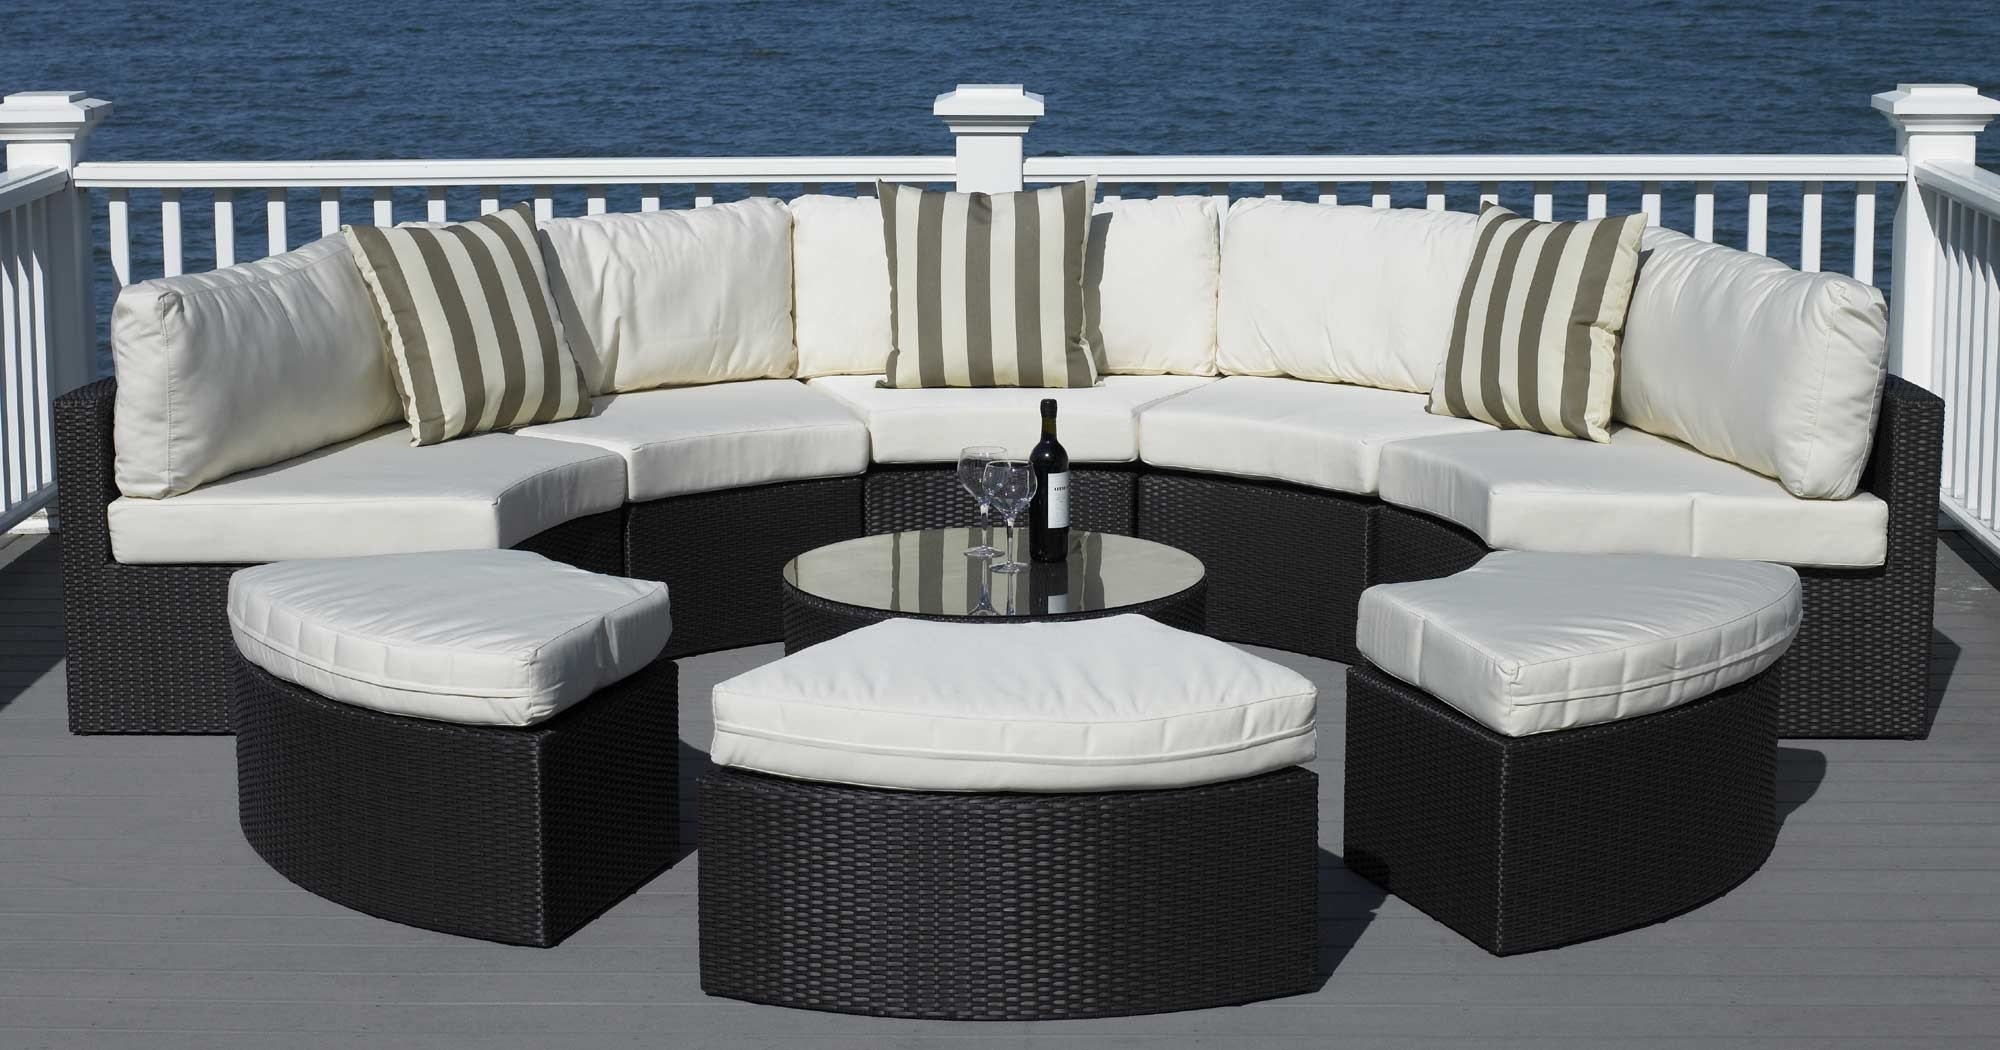 Image of: Semi Circle Outdoor Furniture Creative Patio Outdoor Design Pertaining To Outdoor Lounge Furniture Modern Outdoor Lounge Furniture Modern Design